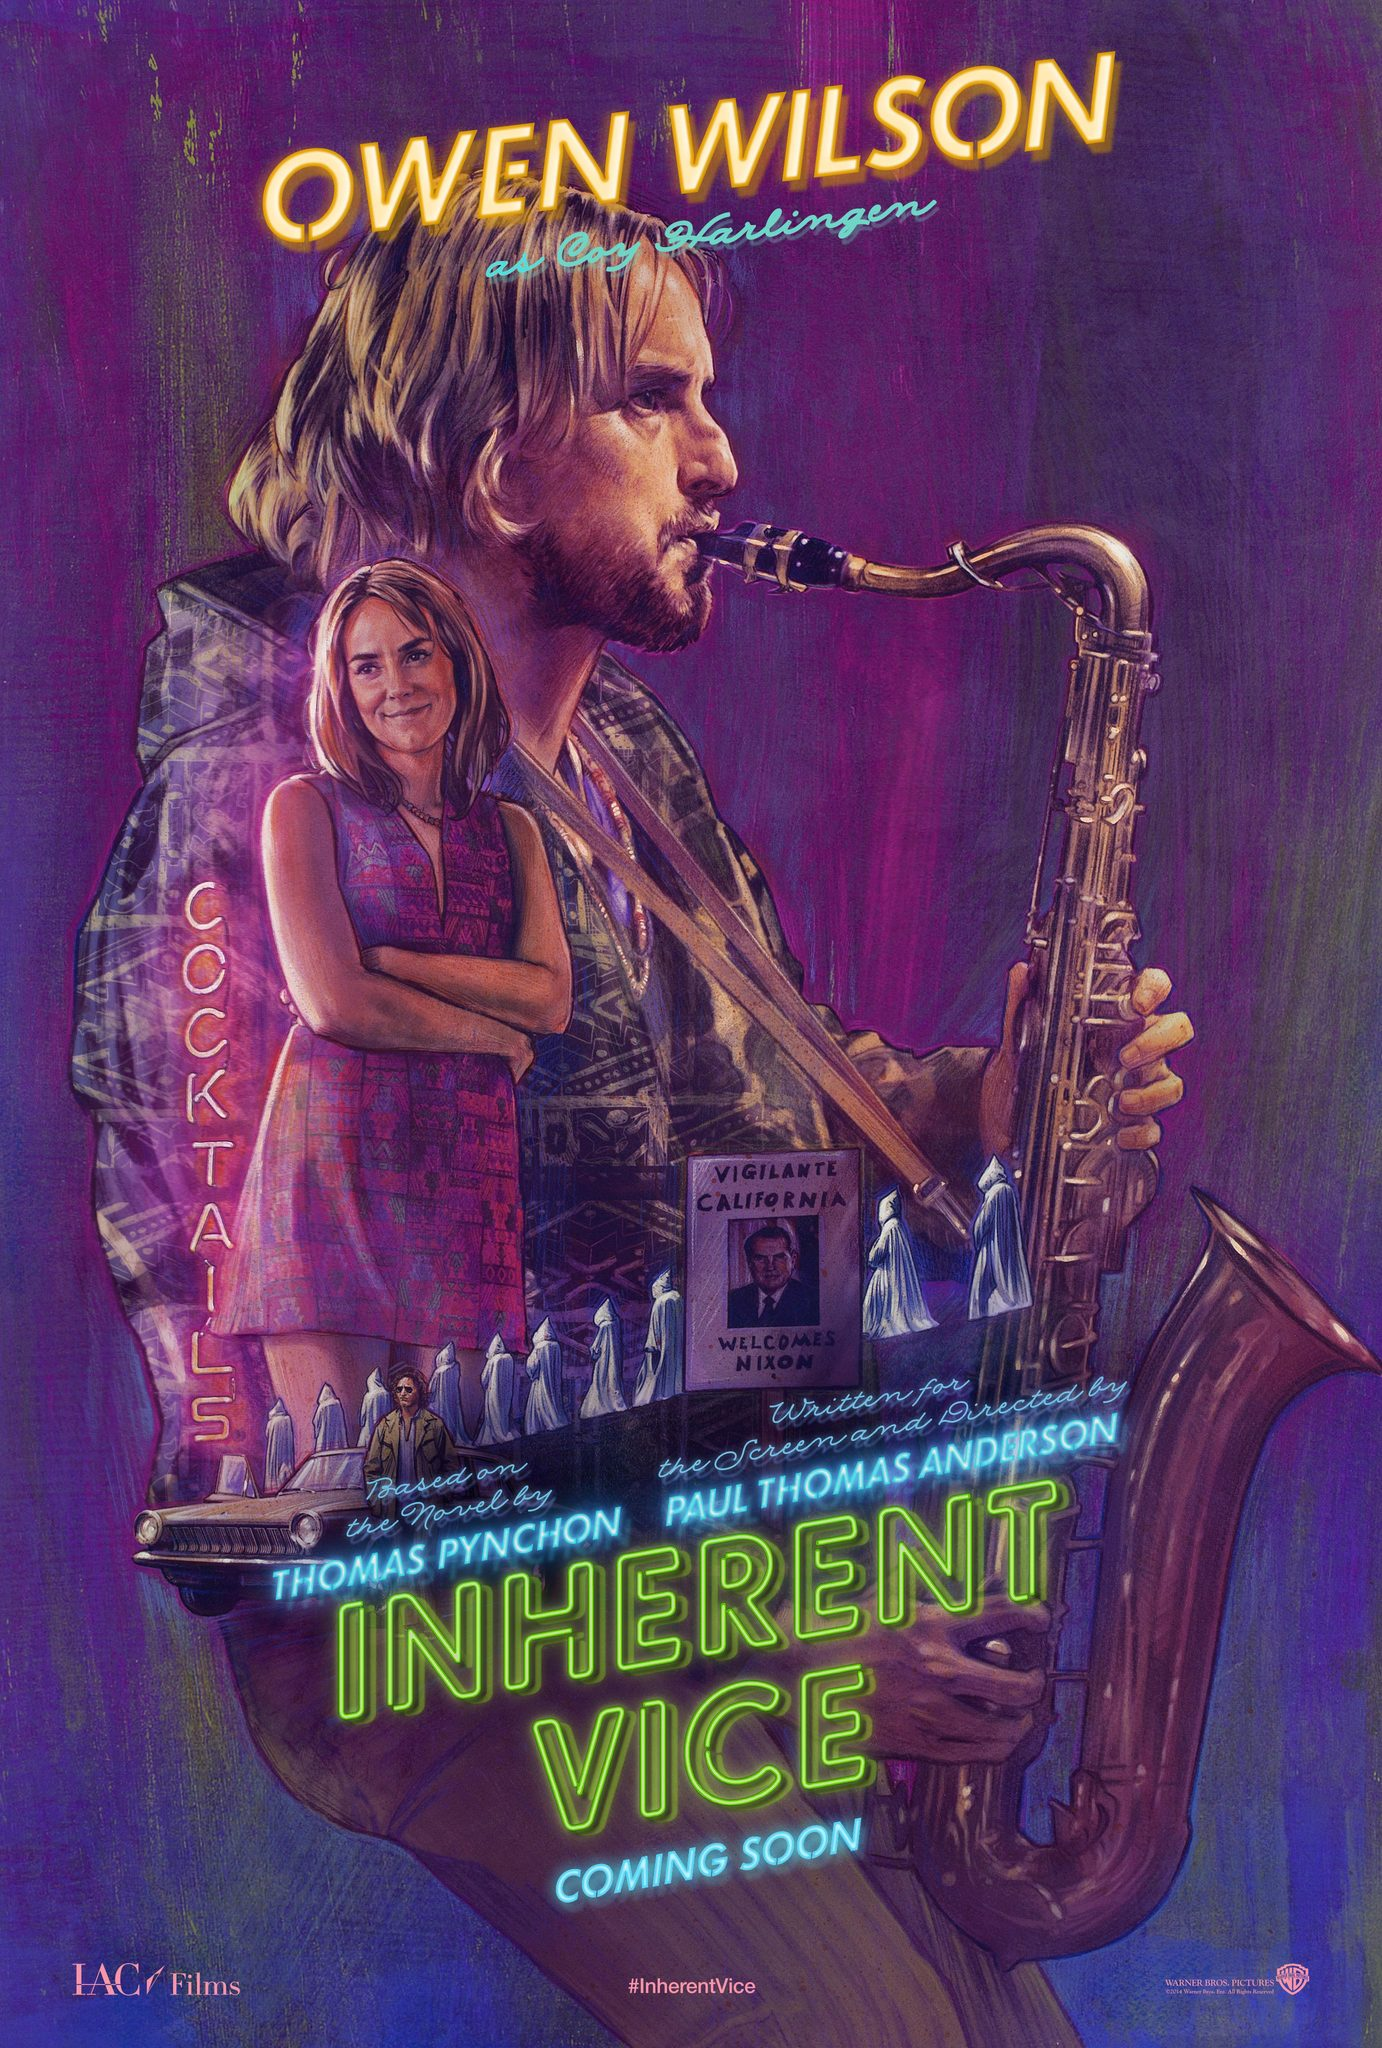 Owen Wilson and Jena Malone in Inherent Vice (2014)